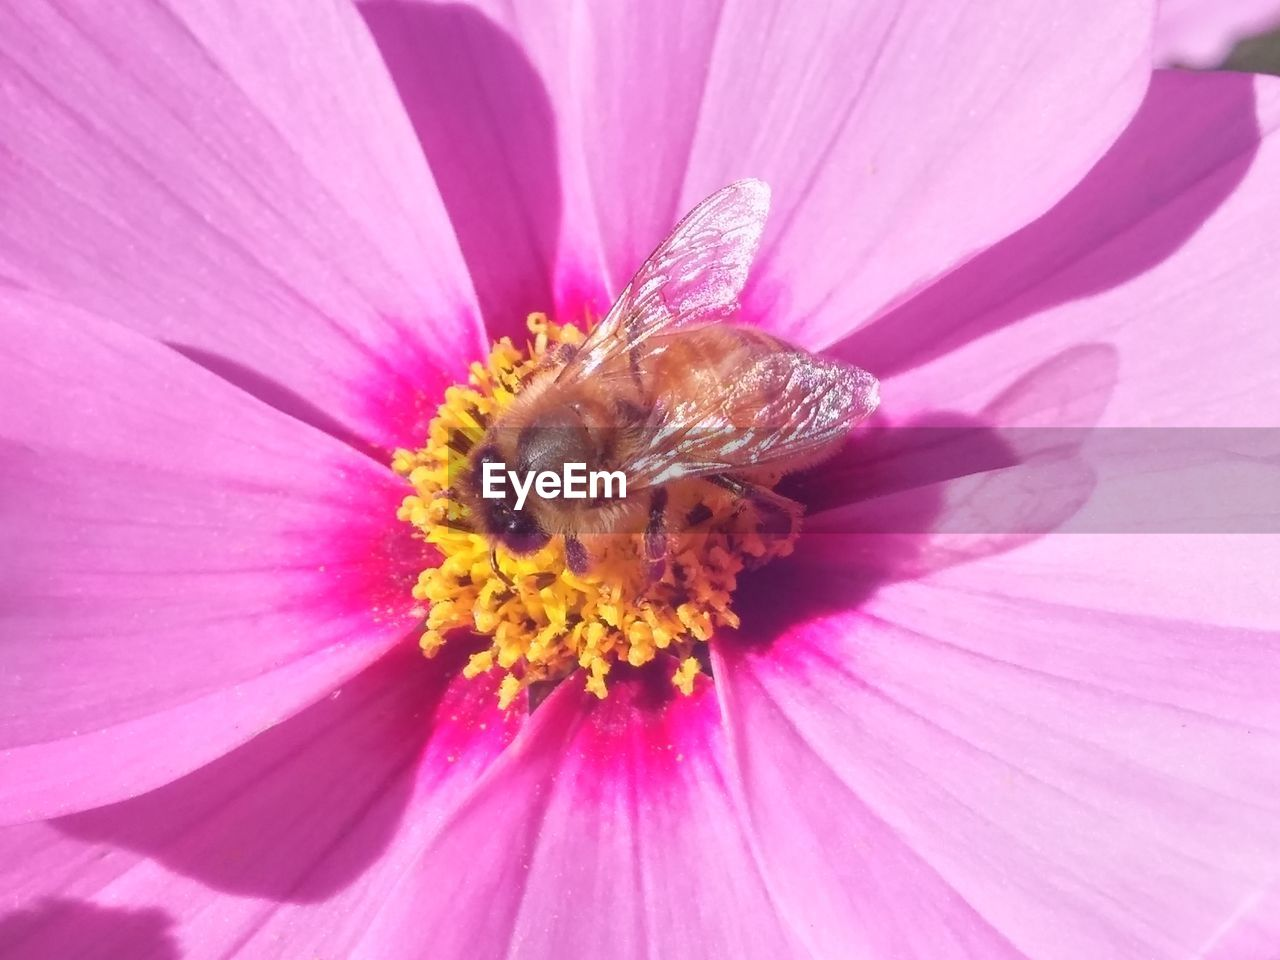 flower, one animal, insect, petal, animal themes, fragility, nature, pollen, flower head, animals in the wild, wildlife, no people, beauty in nature, plant, outdoors, freshness, pink color, close-up, day, bee, growth, pollination